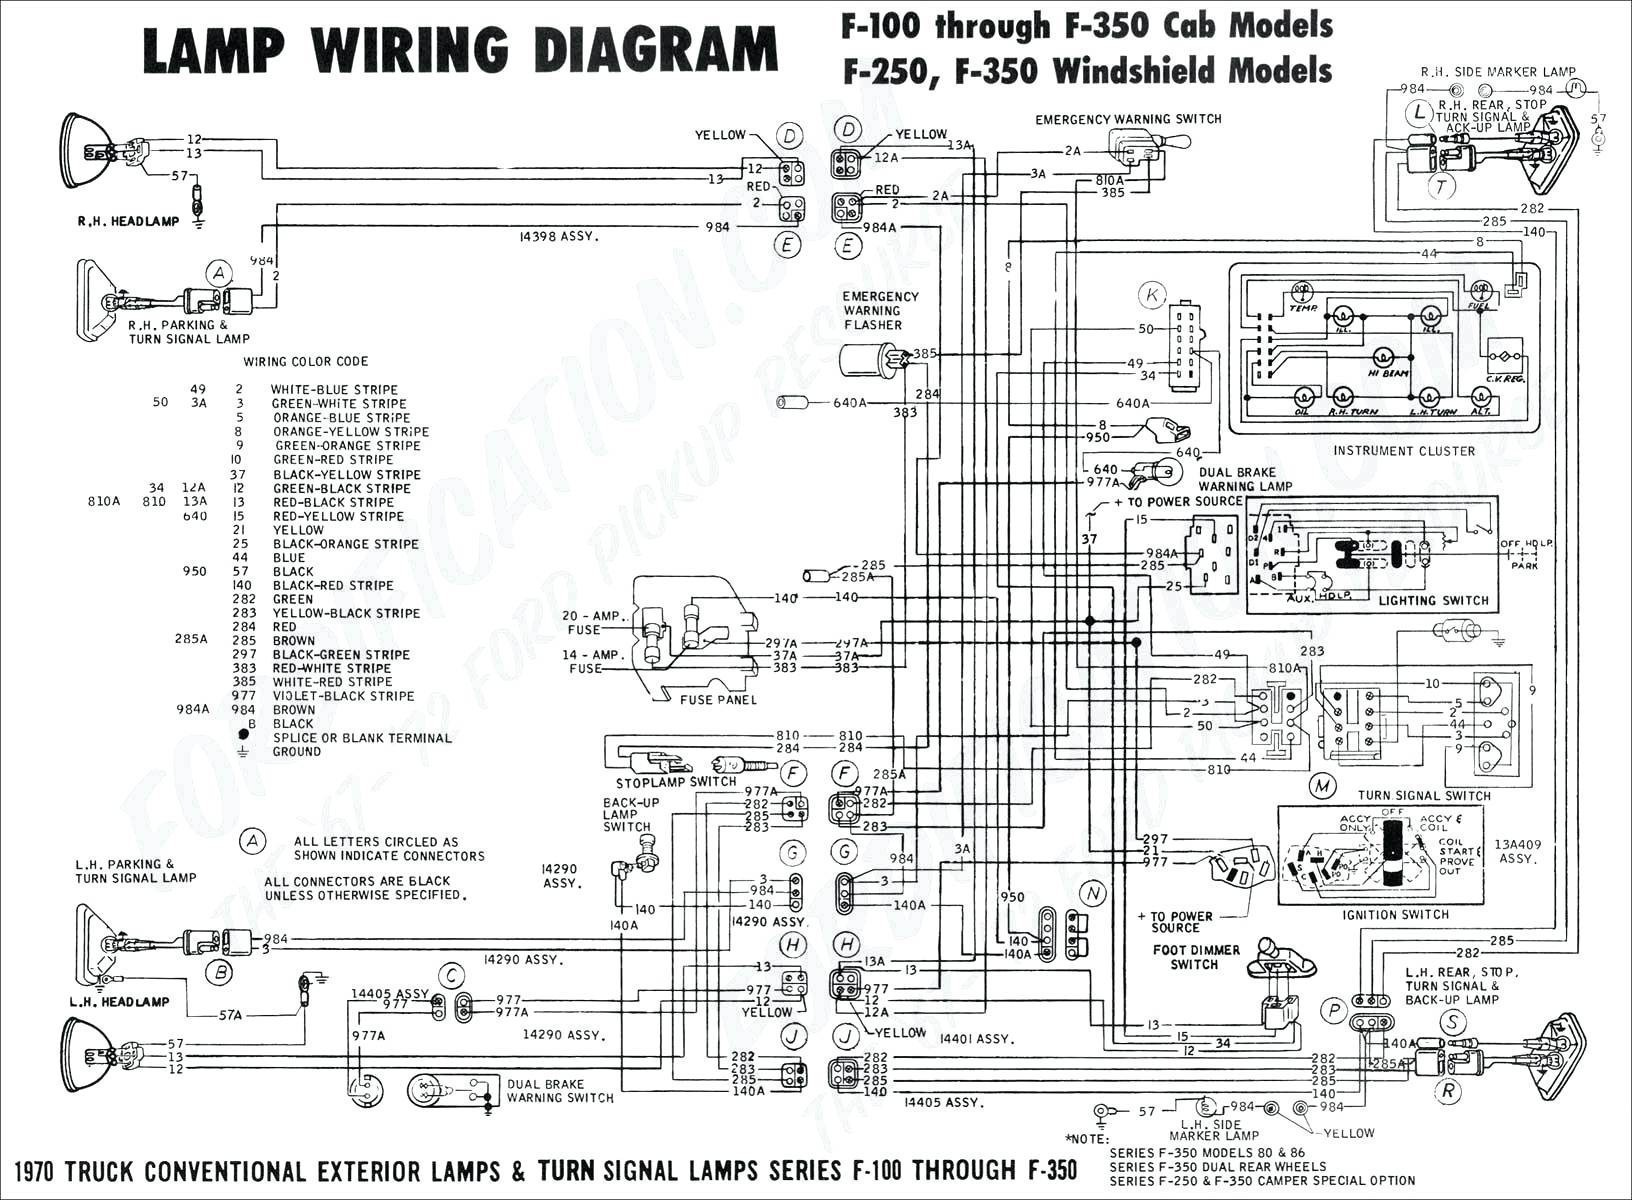 mitsubishi mini truck wiring diagram experts of wiring diagram u2022 rh  tilitten co 2006 Mitsubishi Raider DuroCross 2007 Isuzu Ascender